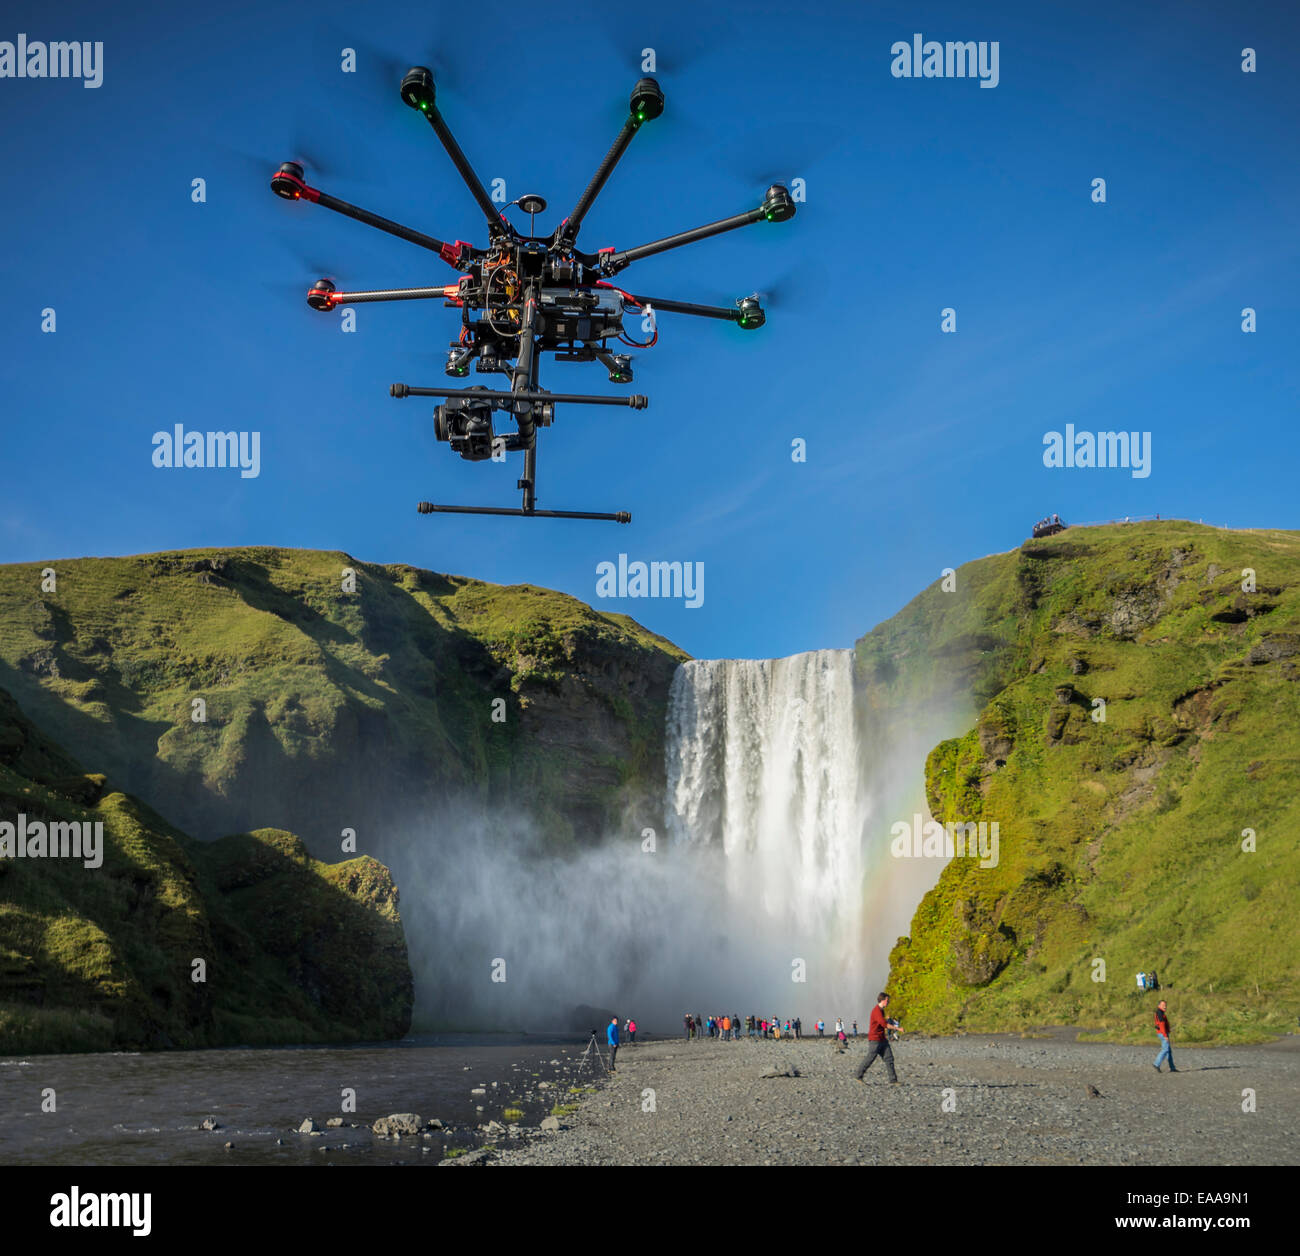 DJI S1000, Radio Controlled Drone flying with a camera, Skogafoss Waterfalls, Iceland - Stock Image